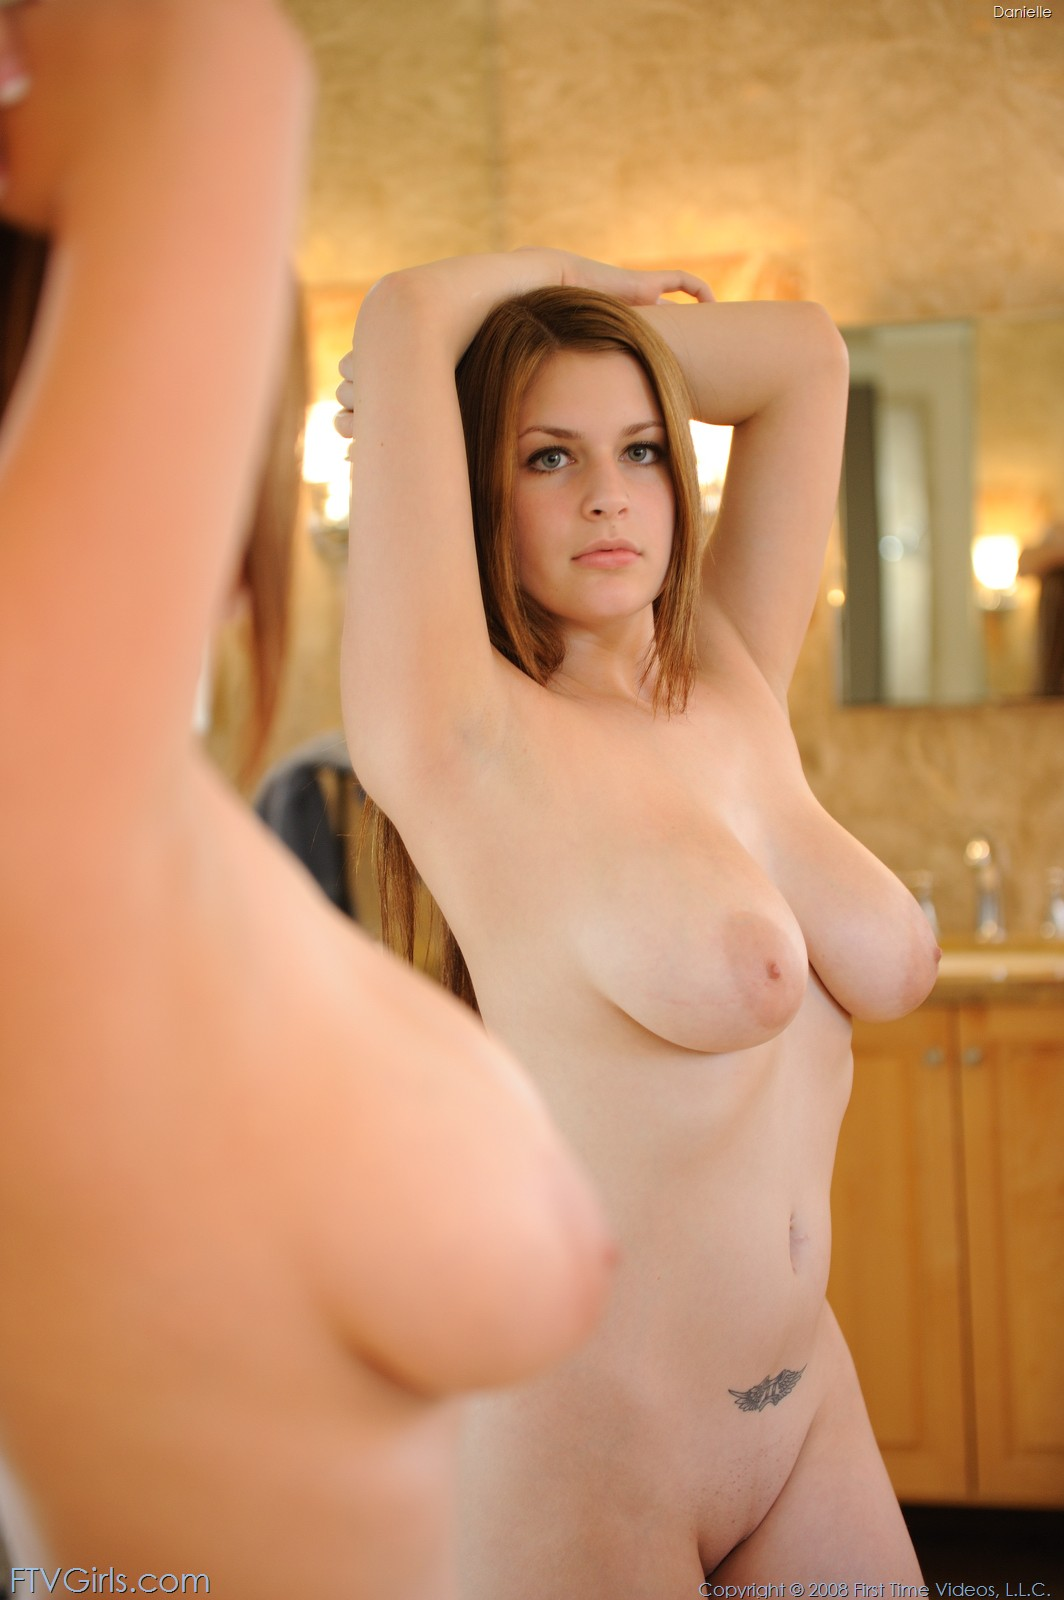 Agree, Danielle ftv naked pictures the world